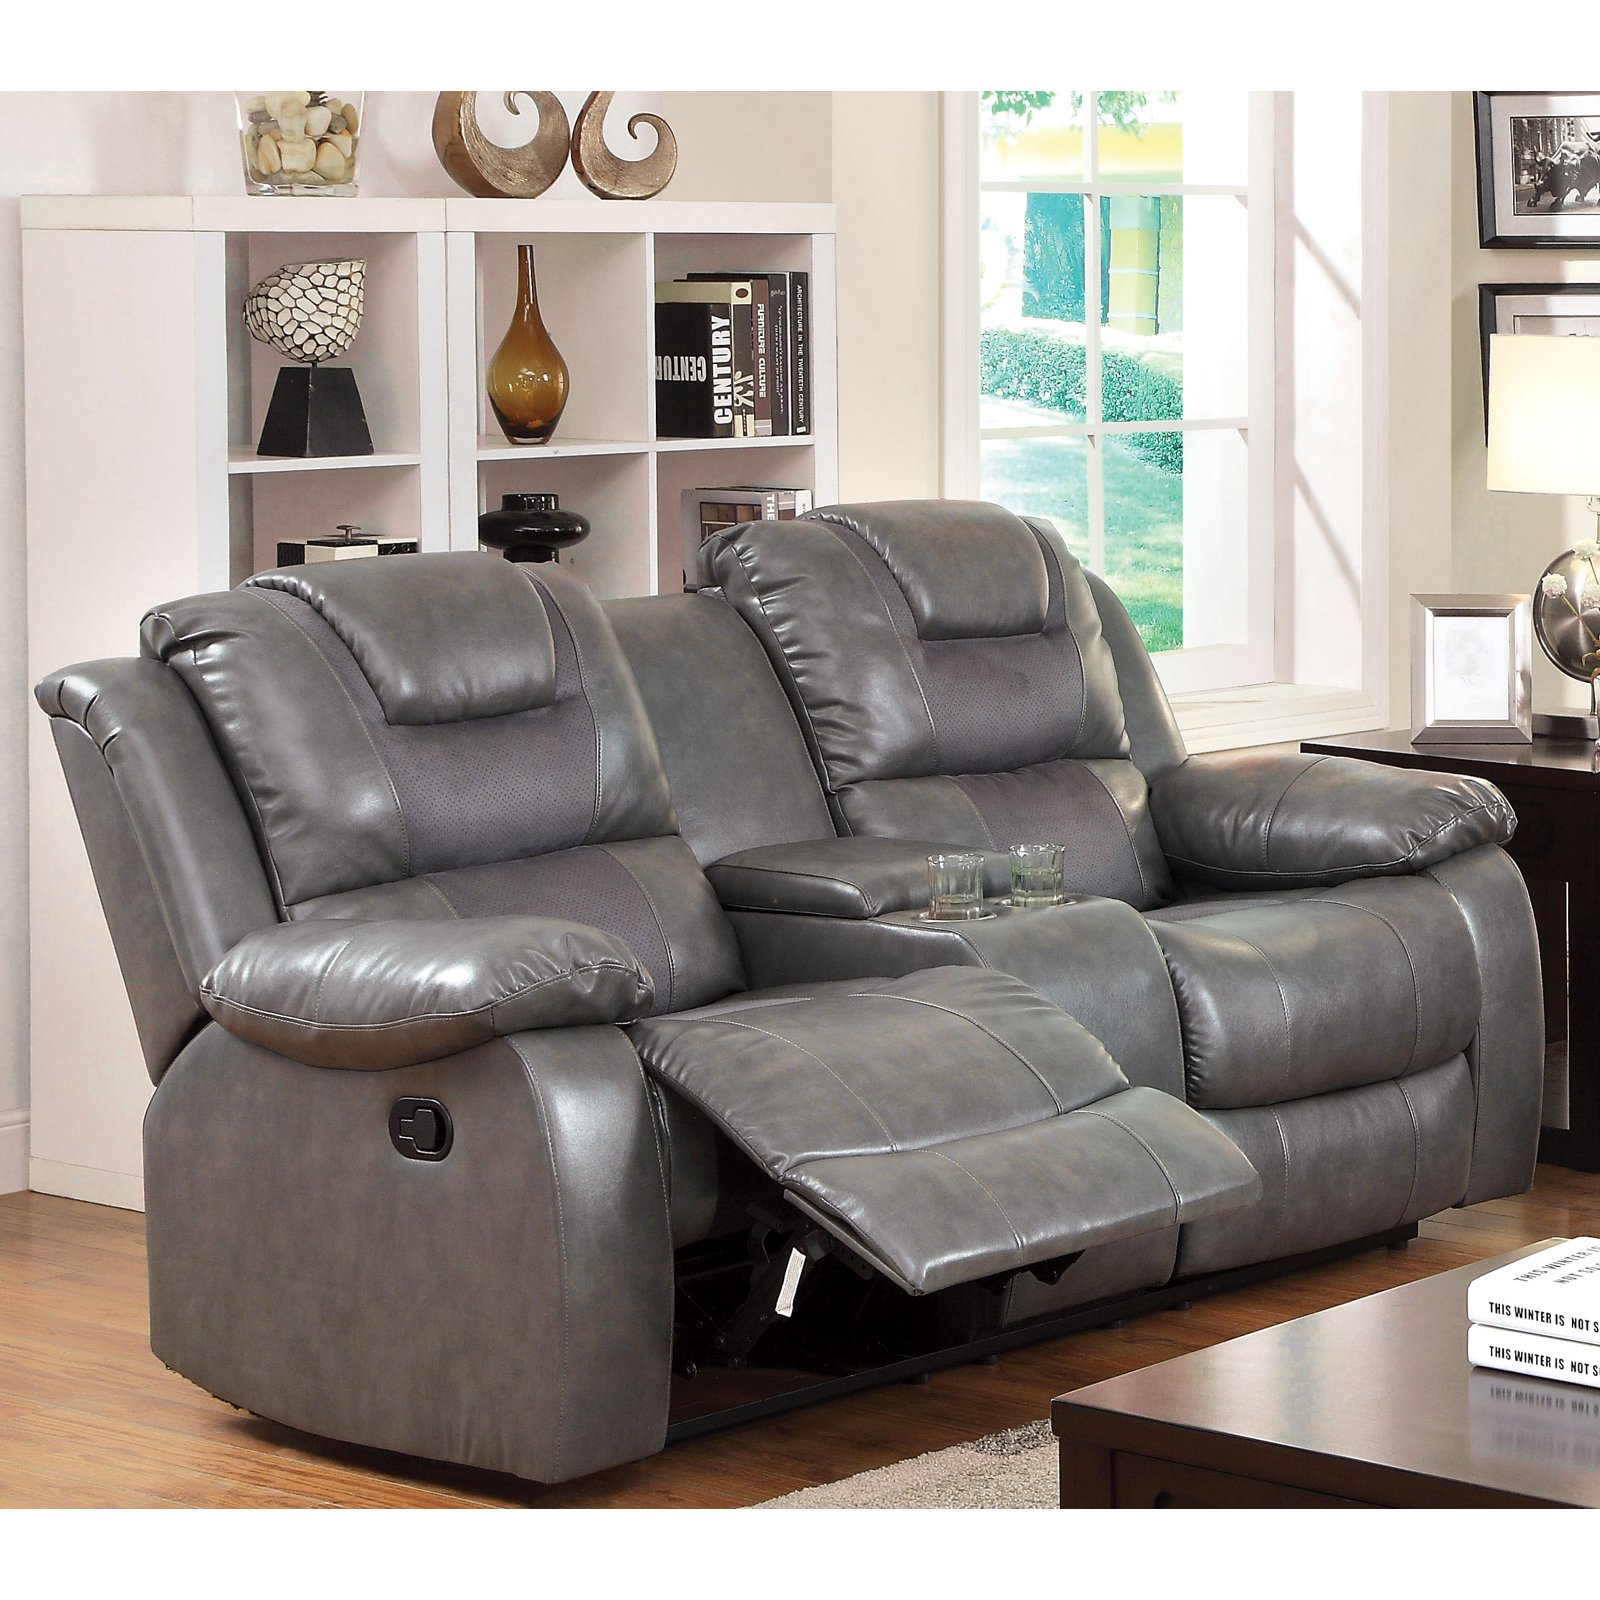 Furniture of America Claybrooks Recliner Loveseat with Center Console